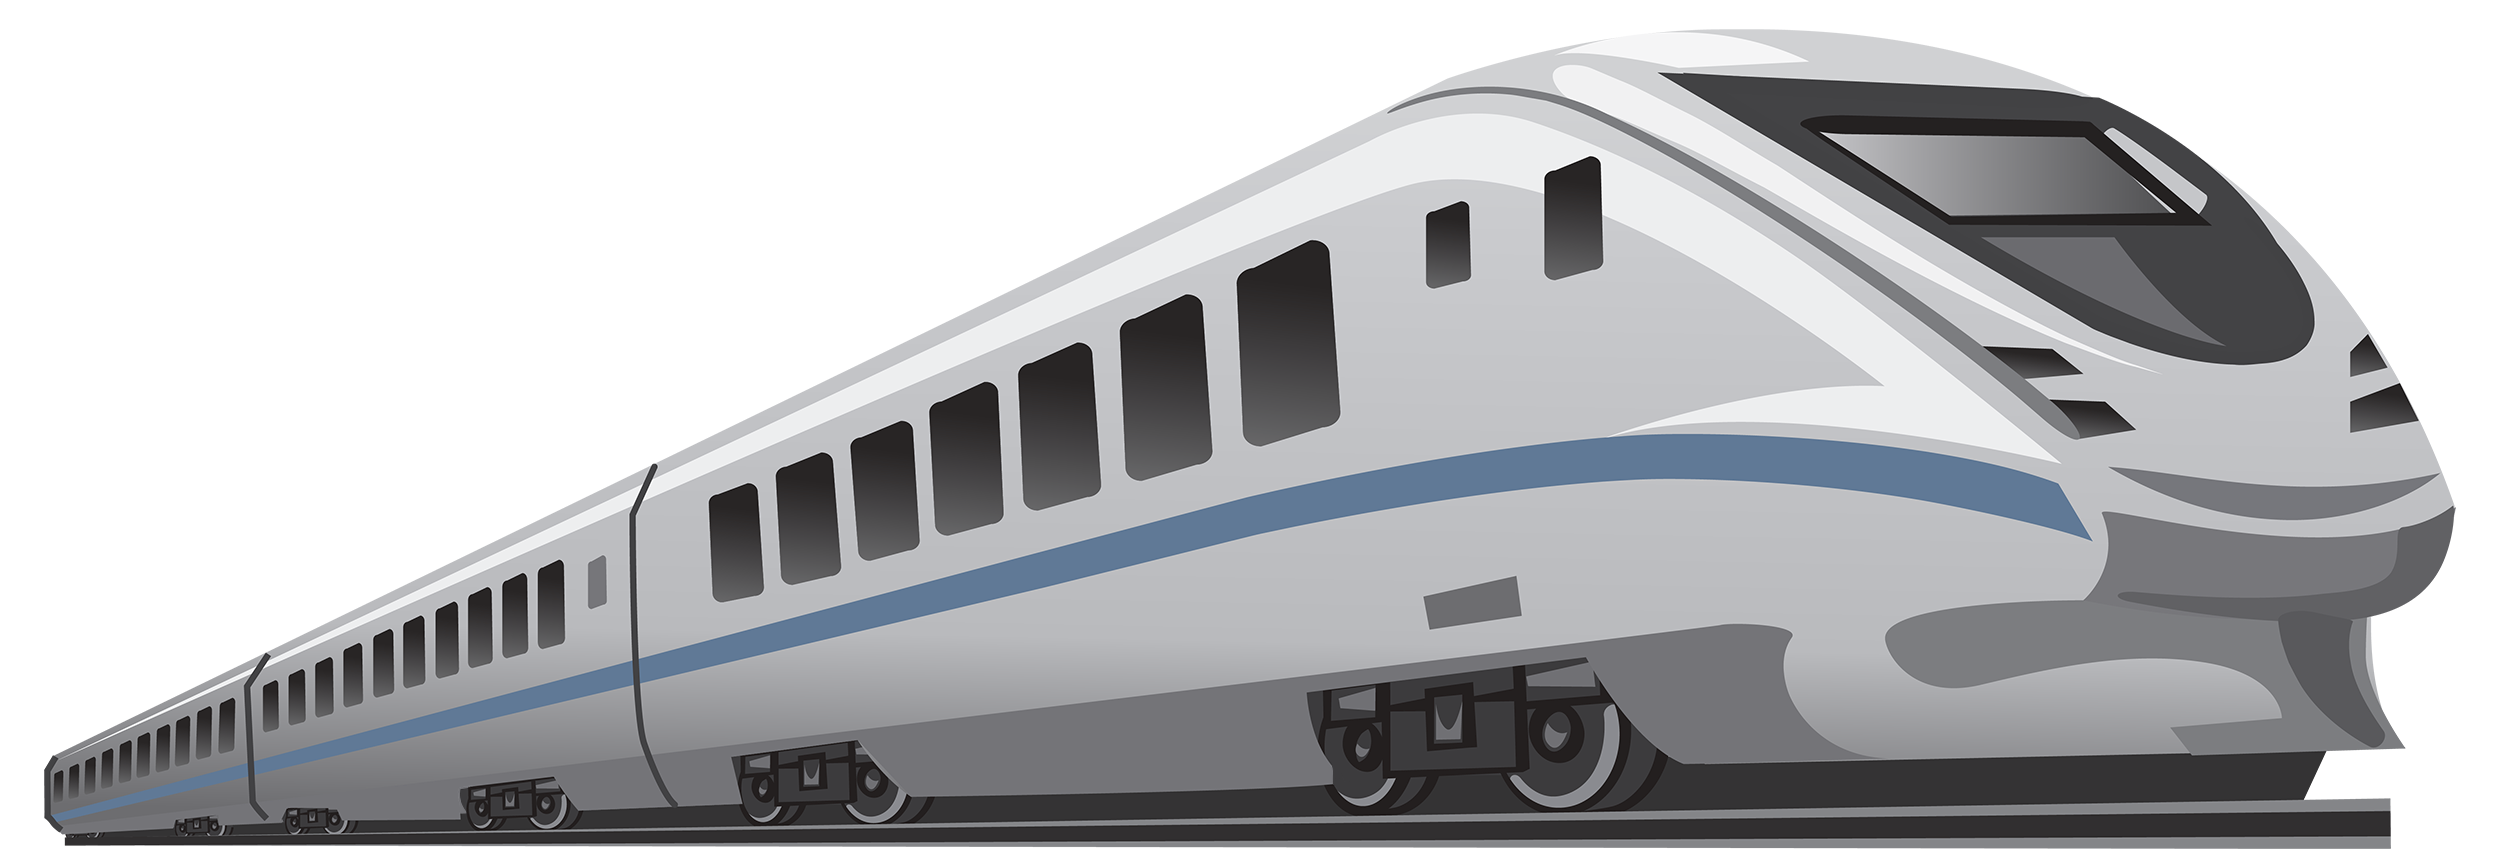 Free download of Train In PNG